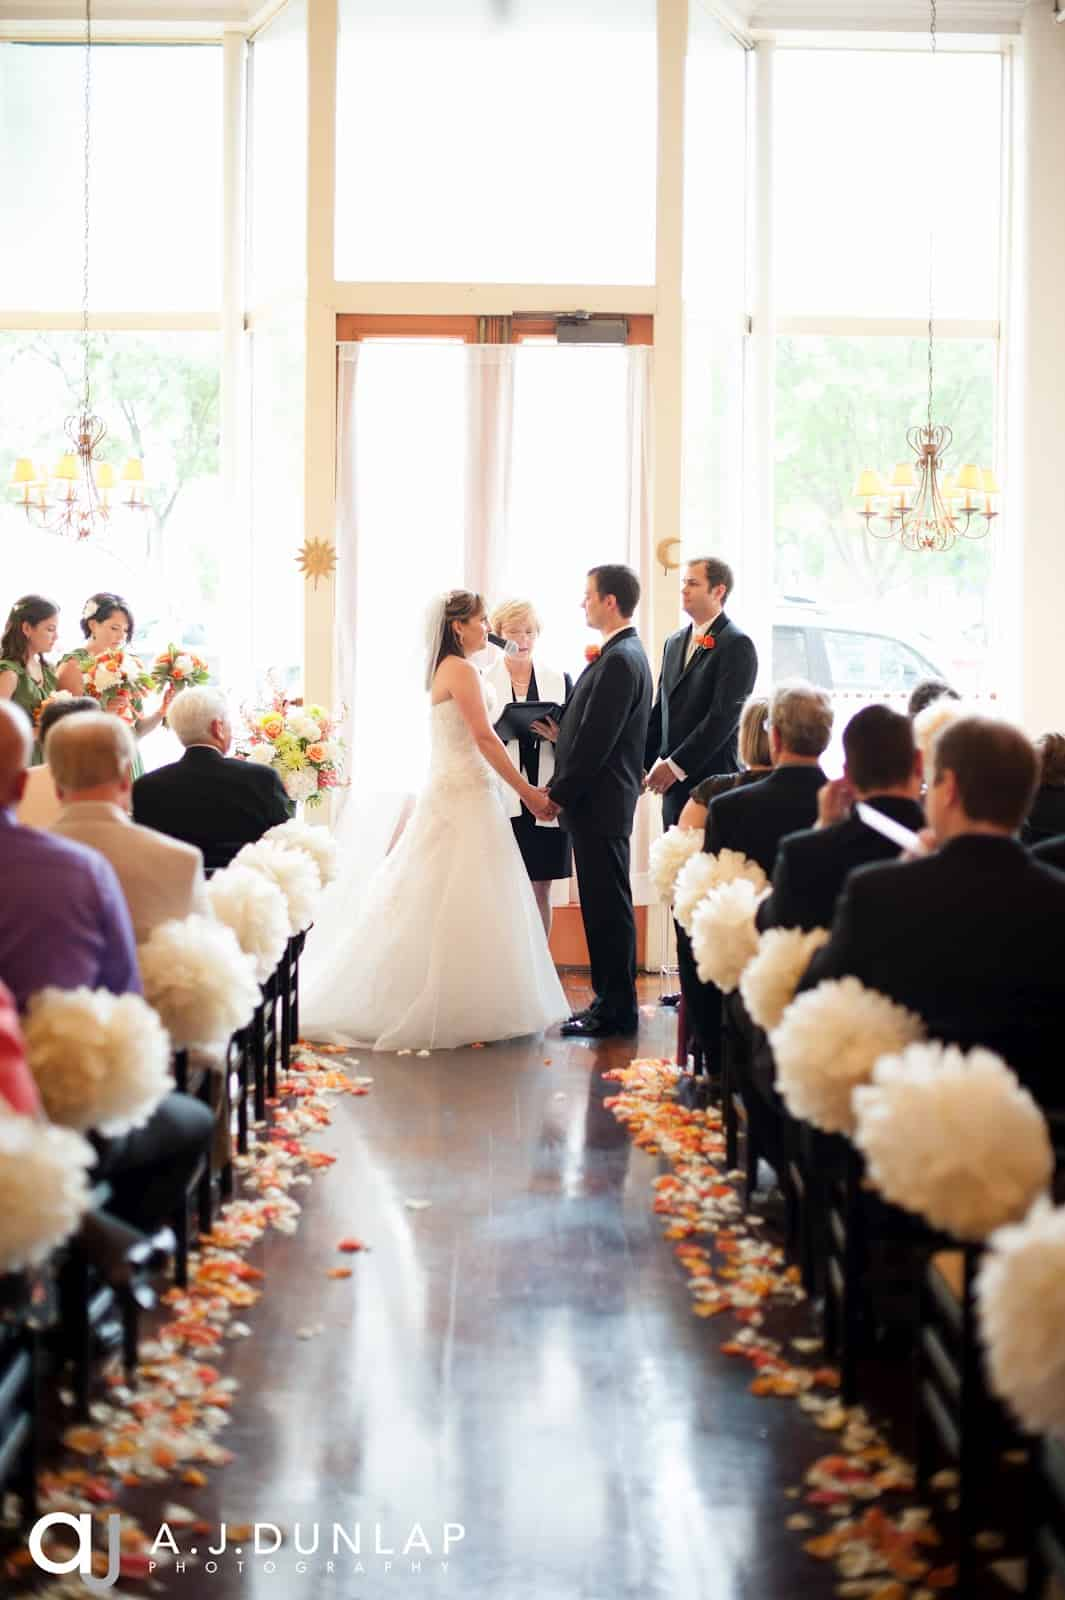 4.22 Wedding Photos from A.J. Dunlap Photography-15